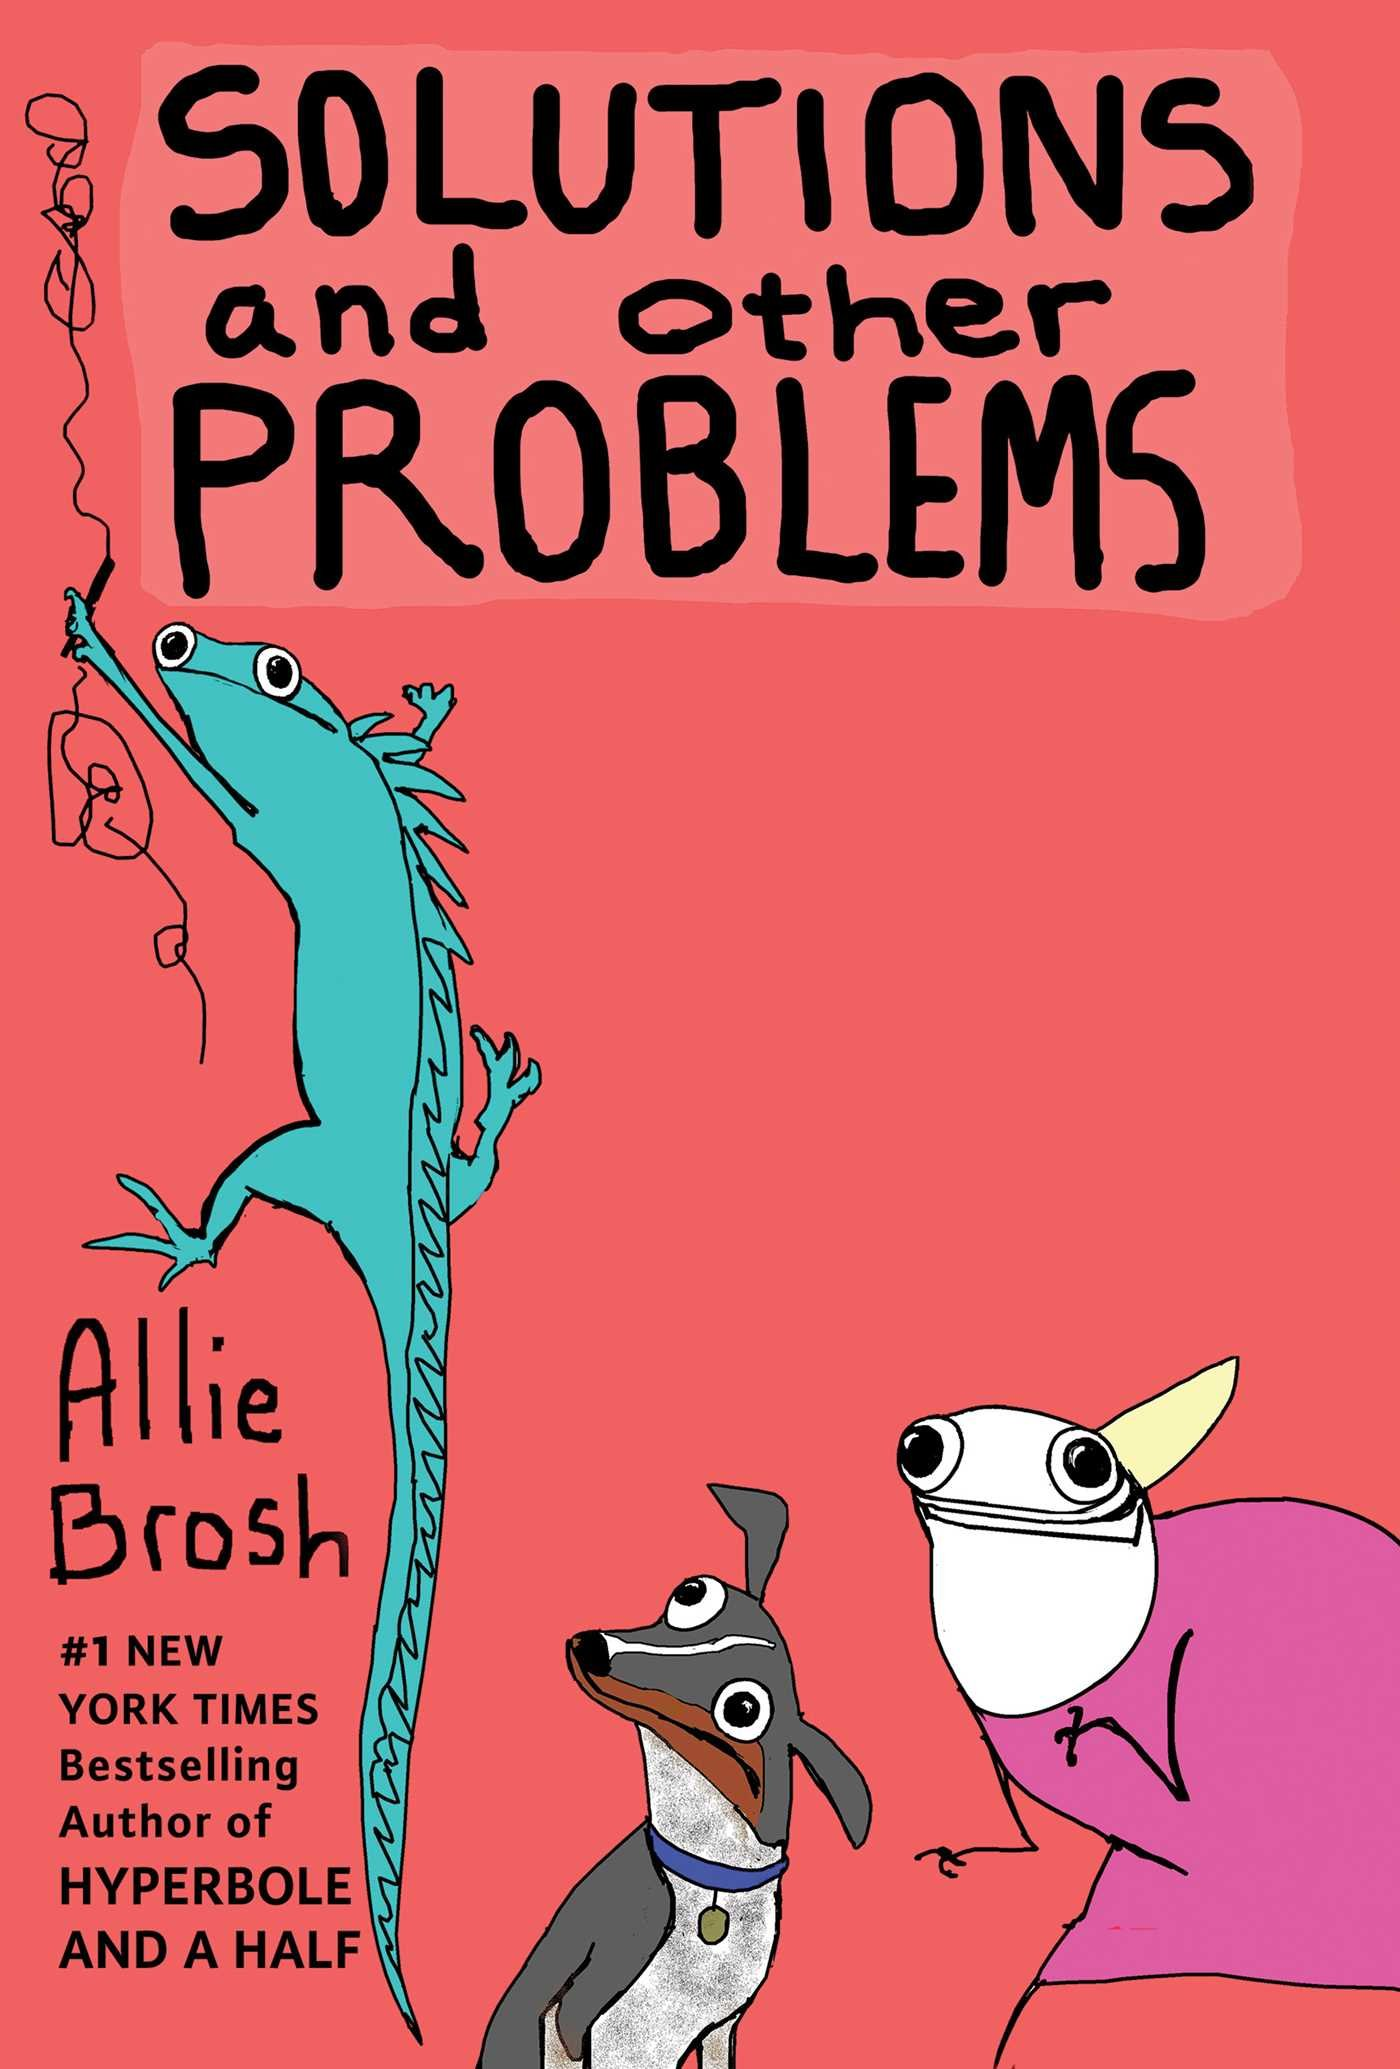 Solutions and Other Problems: Allie Brosh: 9781501103285: Amazon.com: Books